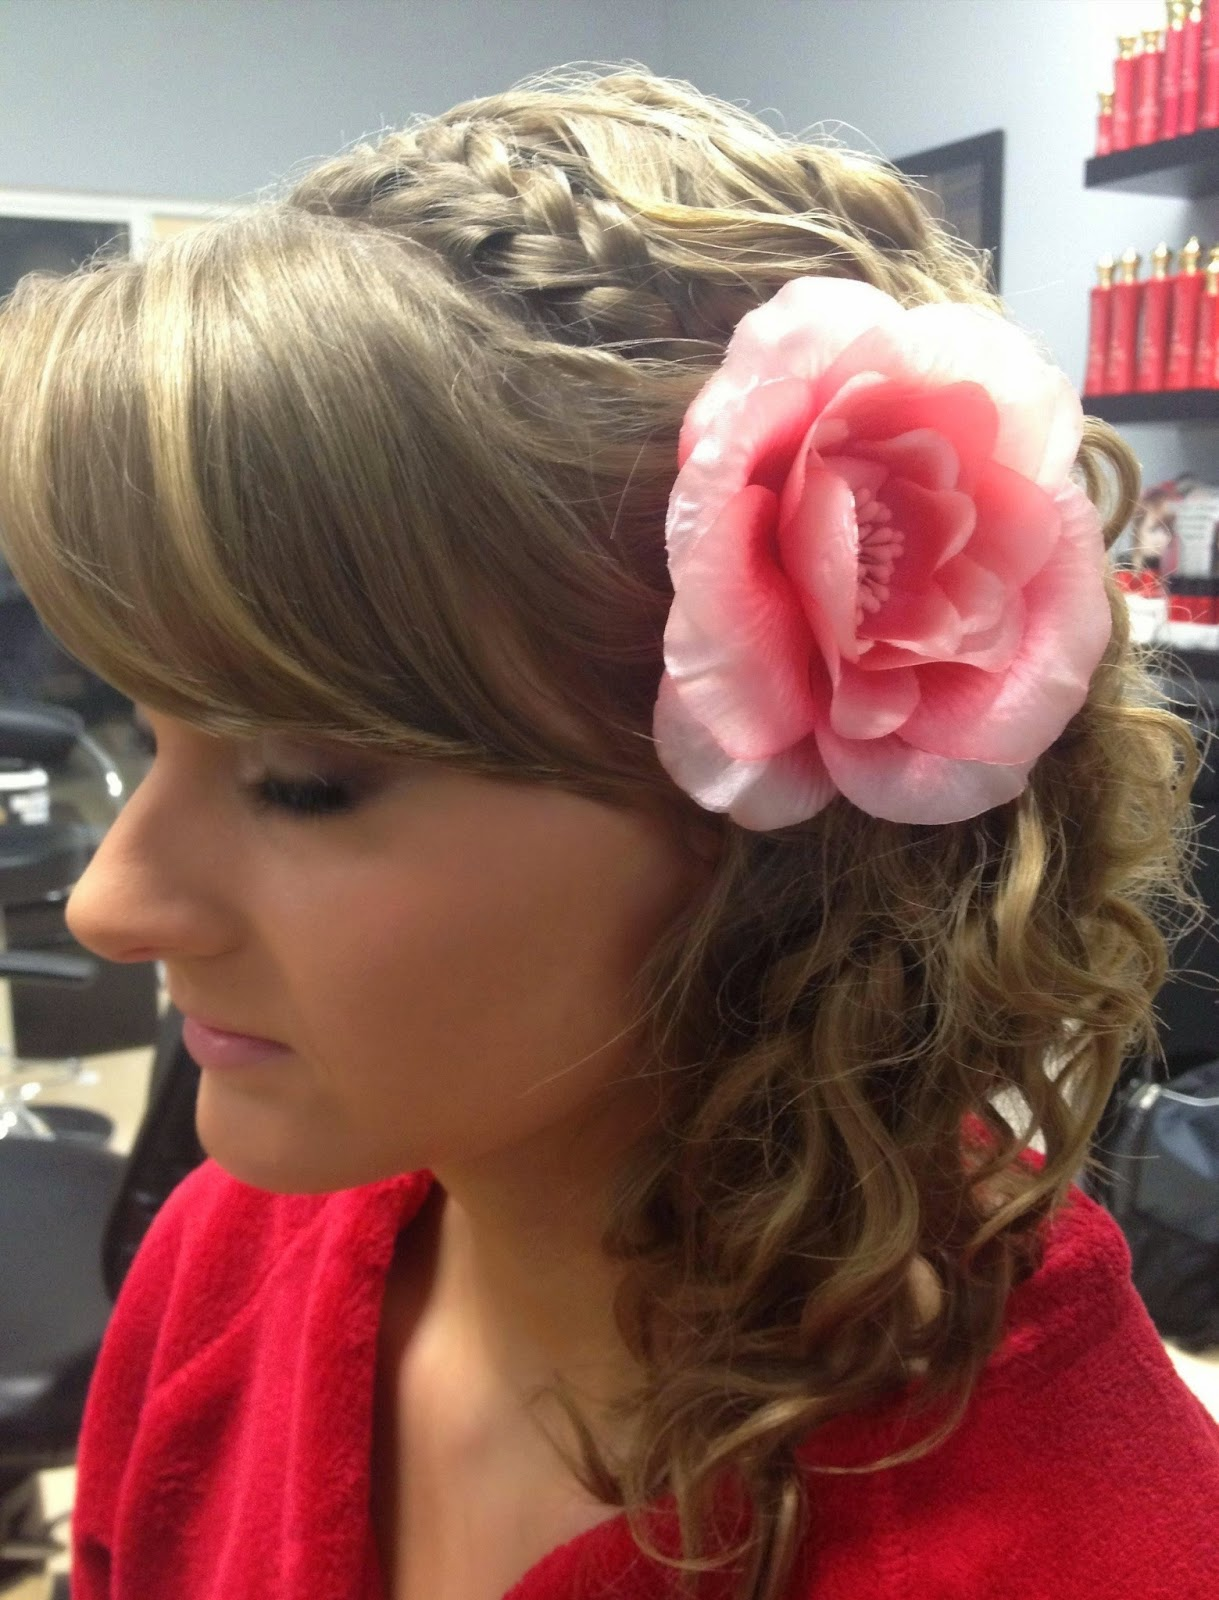 Astounding 8 Stunning Prom Updos For Long Hair Latest Hair Styles Amp Colors Short Hairstyles Gunalazisus